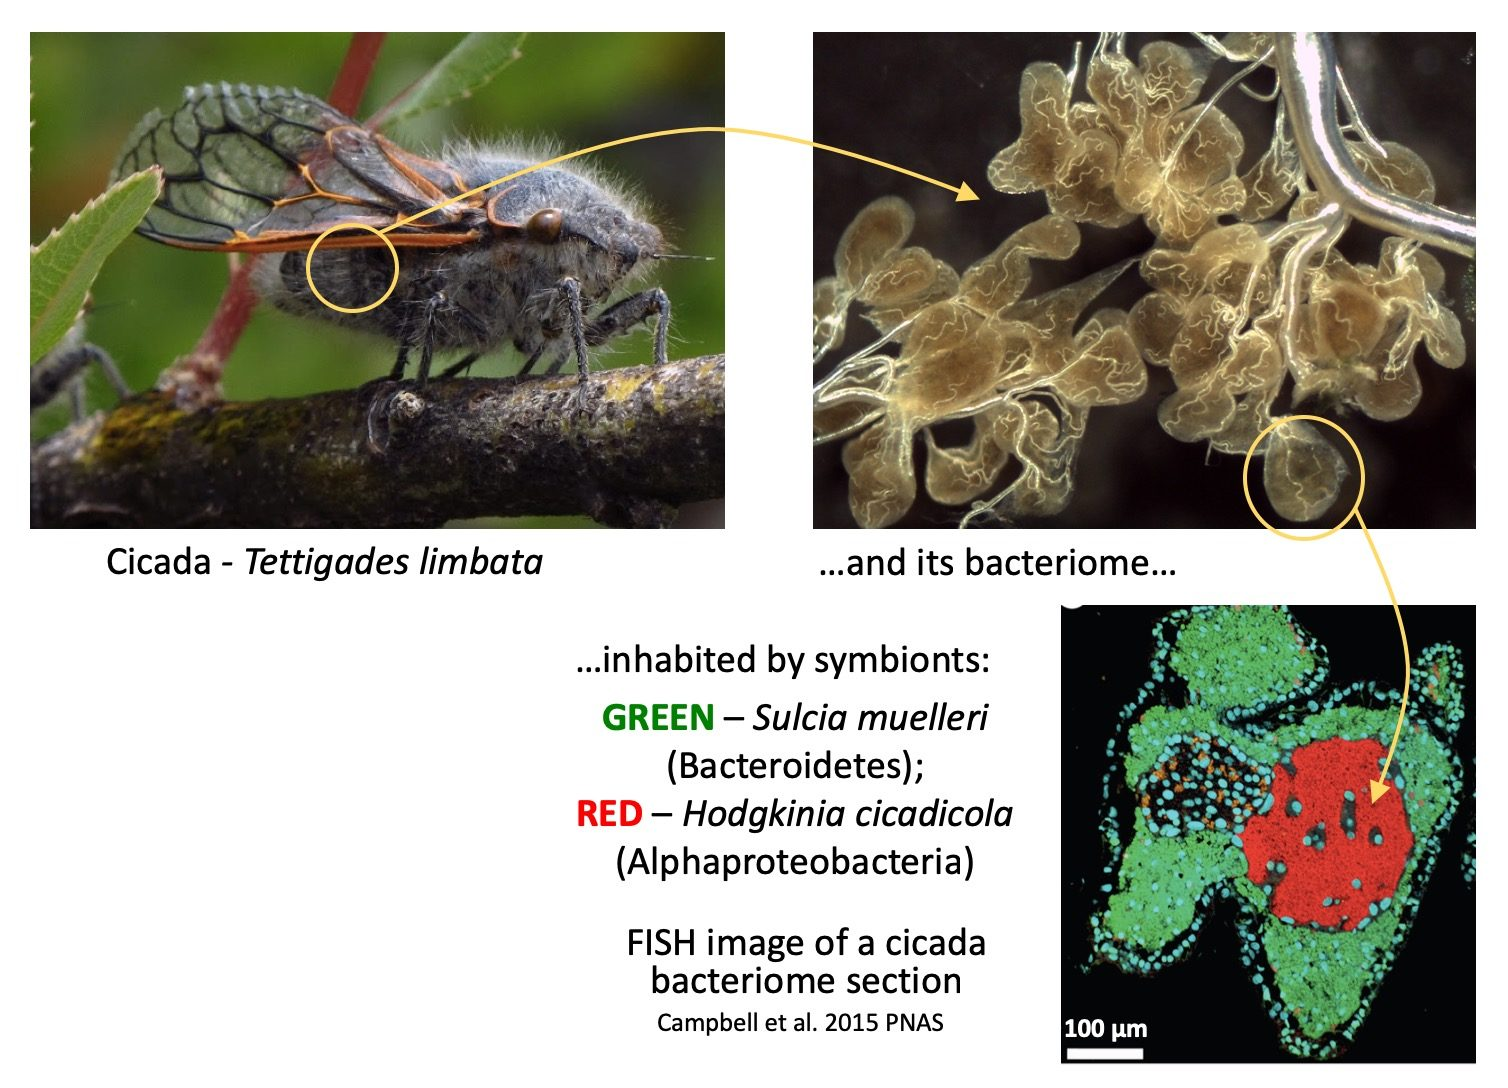 The cicada bacteriome: localization and contents